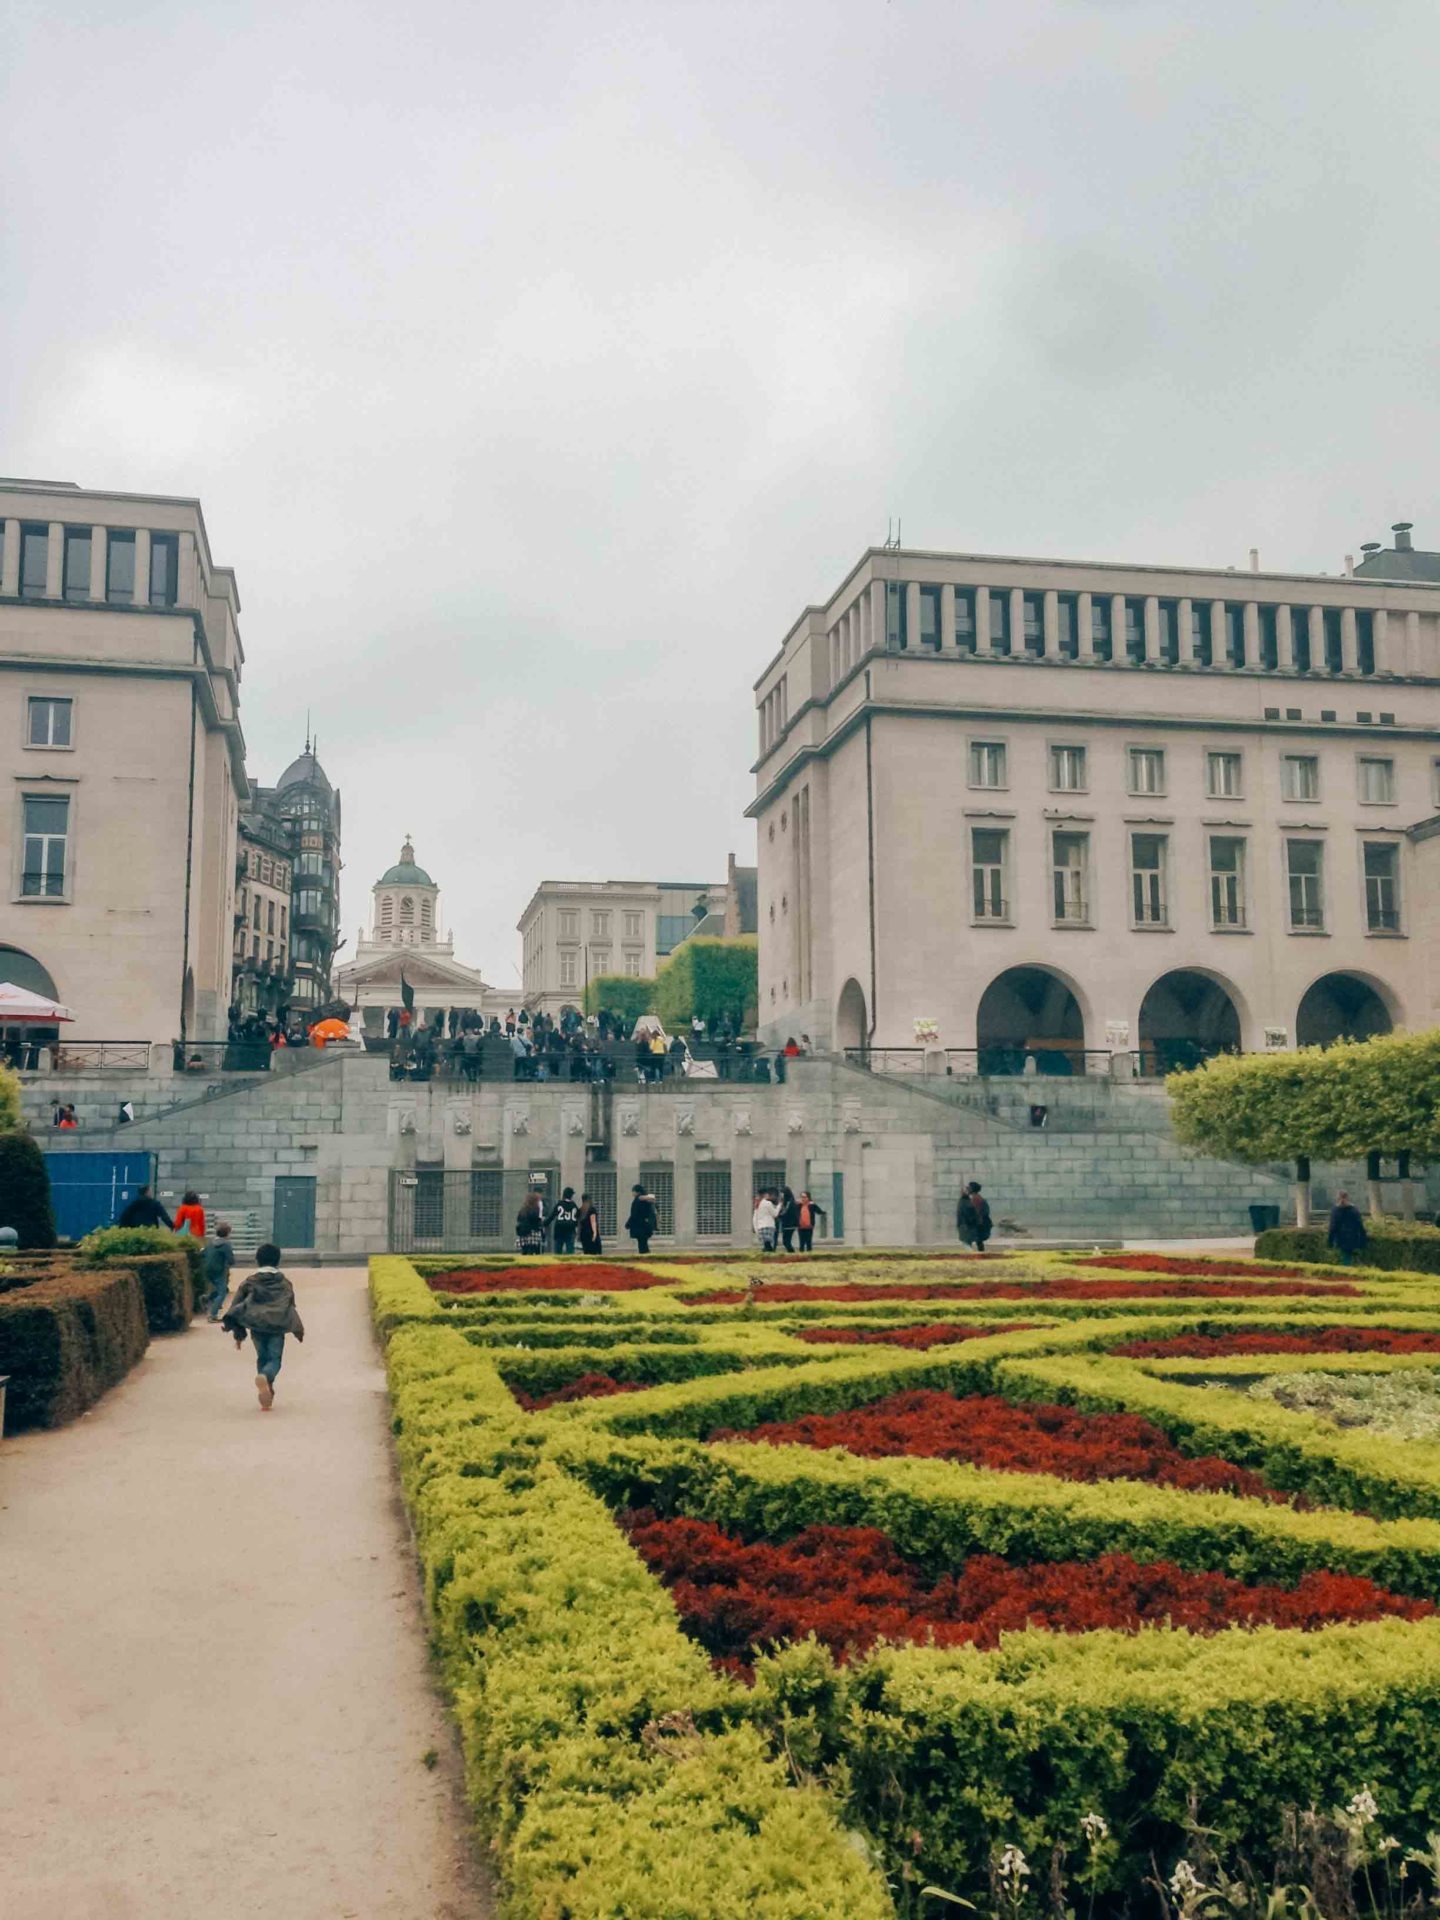 Mont des Arts gardens in Brussels